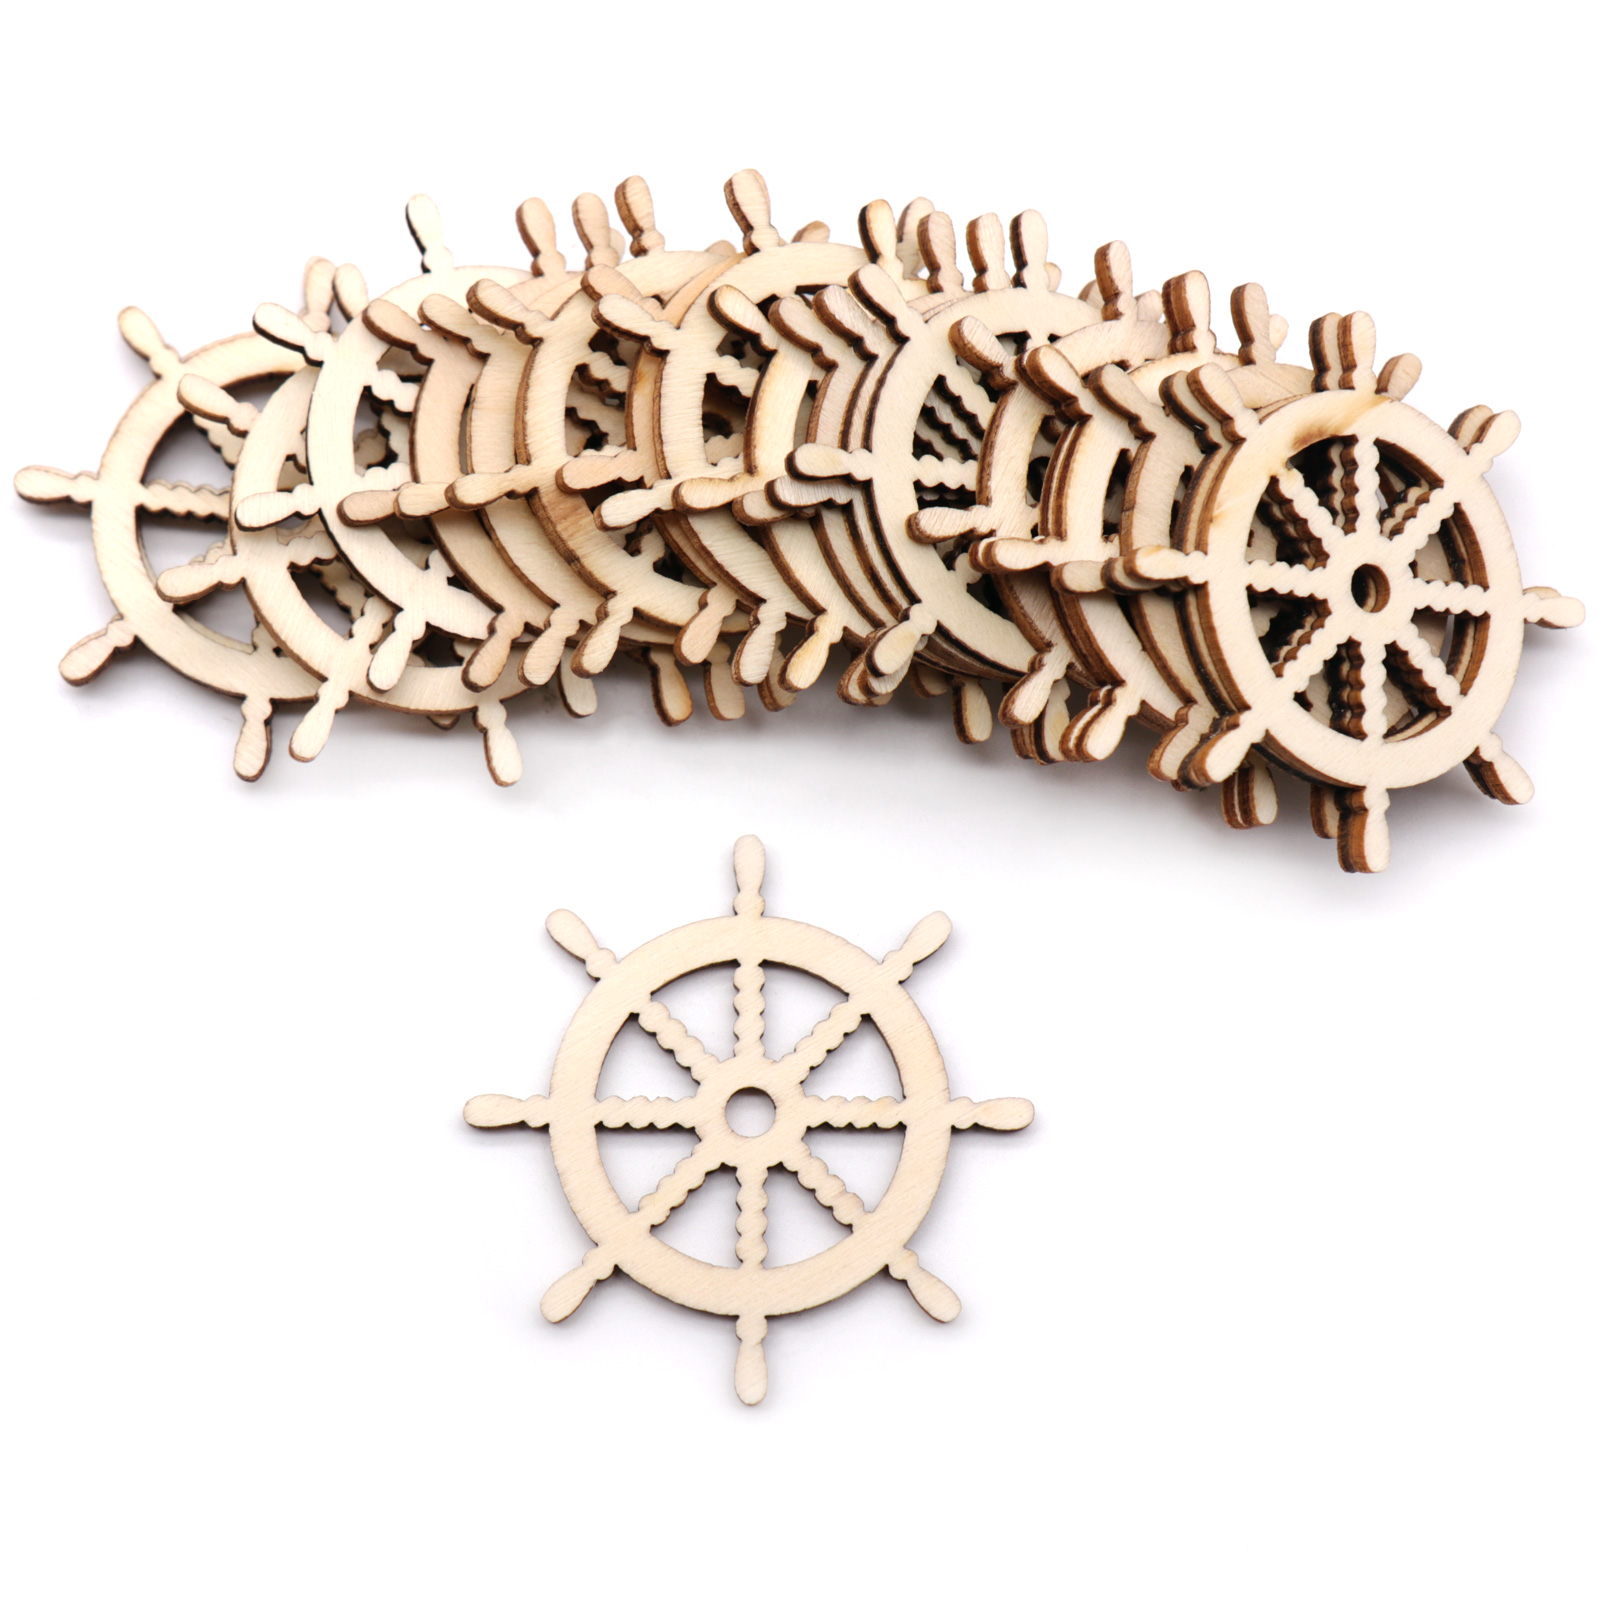 10pcs Wooden Anchor & Steering Sailing Boat  Crafts Wall Hanging Pendant Ornament DIY Scrapbook Home Wedding Party Supply